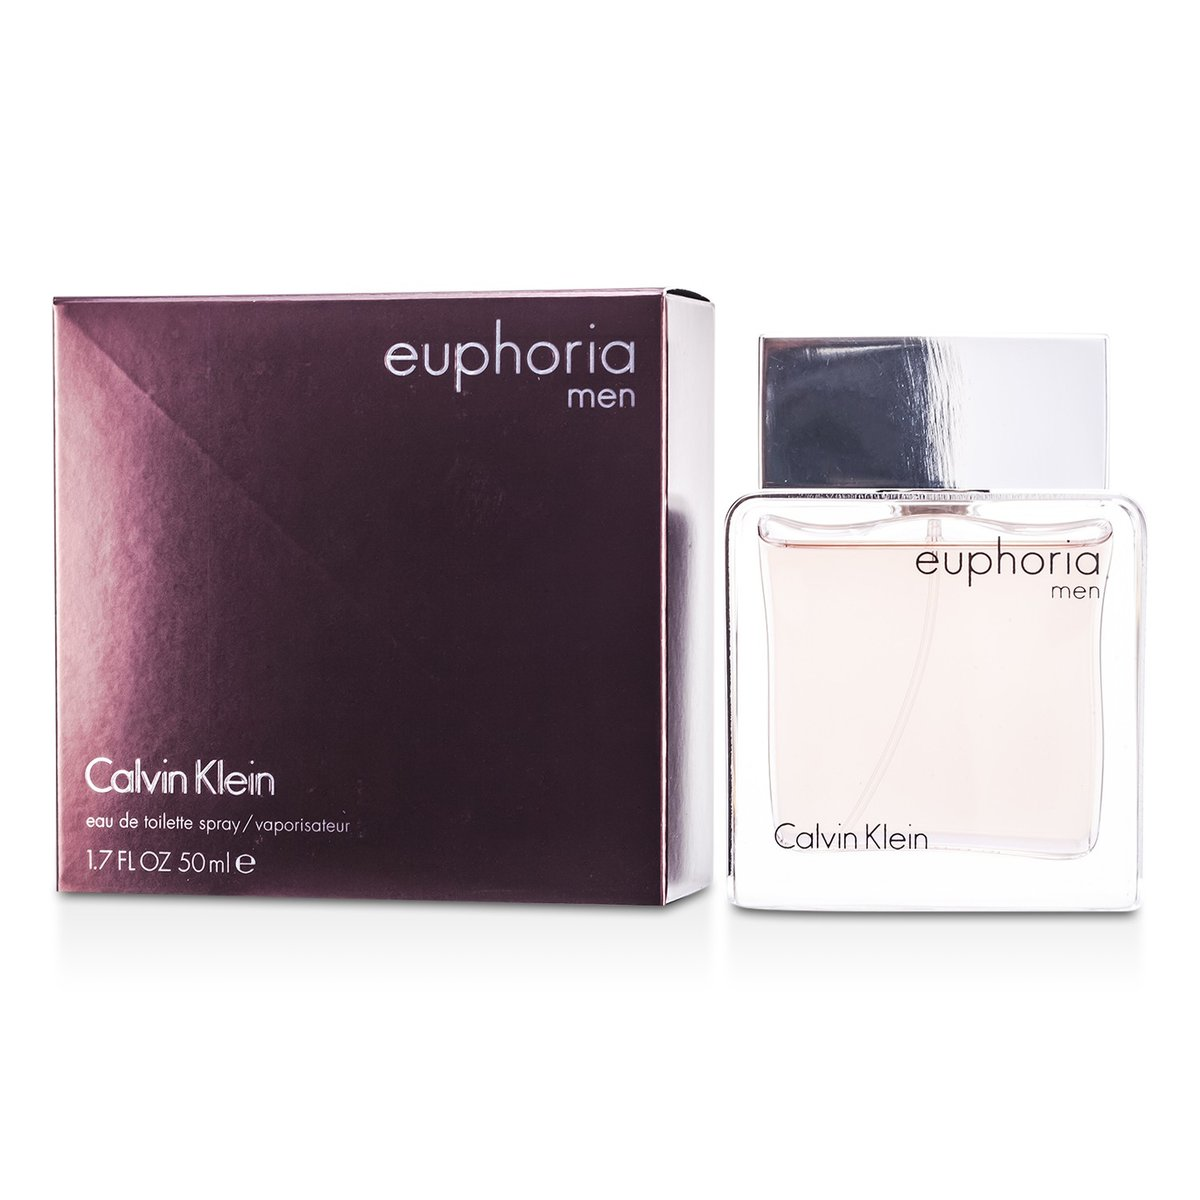 Euphoria Men Eau De Toilette Spray 50ml/1.7oz - [Parallel Import Product]